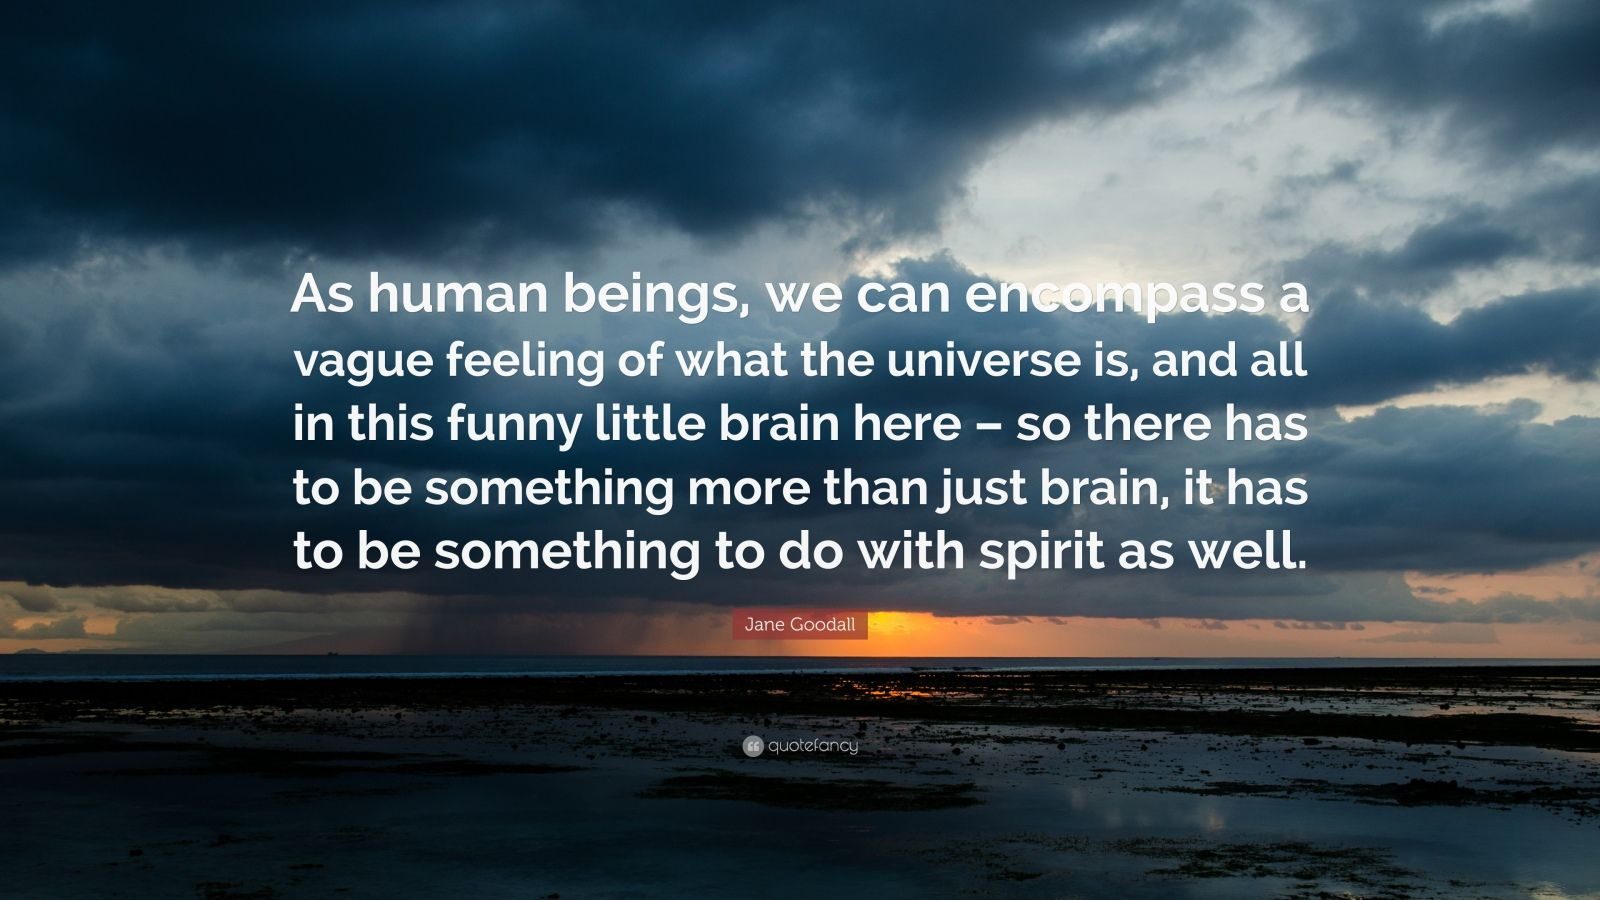 """Jane Goodall Quote: """"As human beings, we can encompass a vague feeling of what the universe is, and all in this funny little brain here – so there has to be something more than just brain, it has to be something to do with spirit as well."""""""